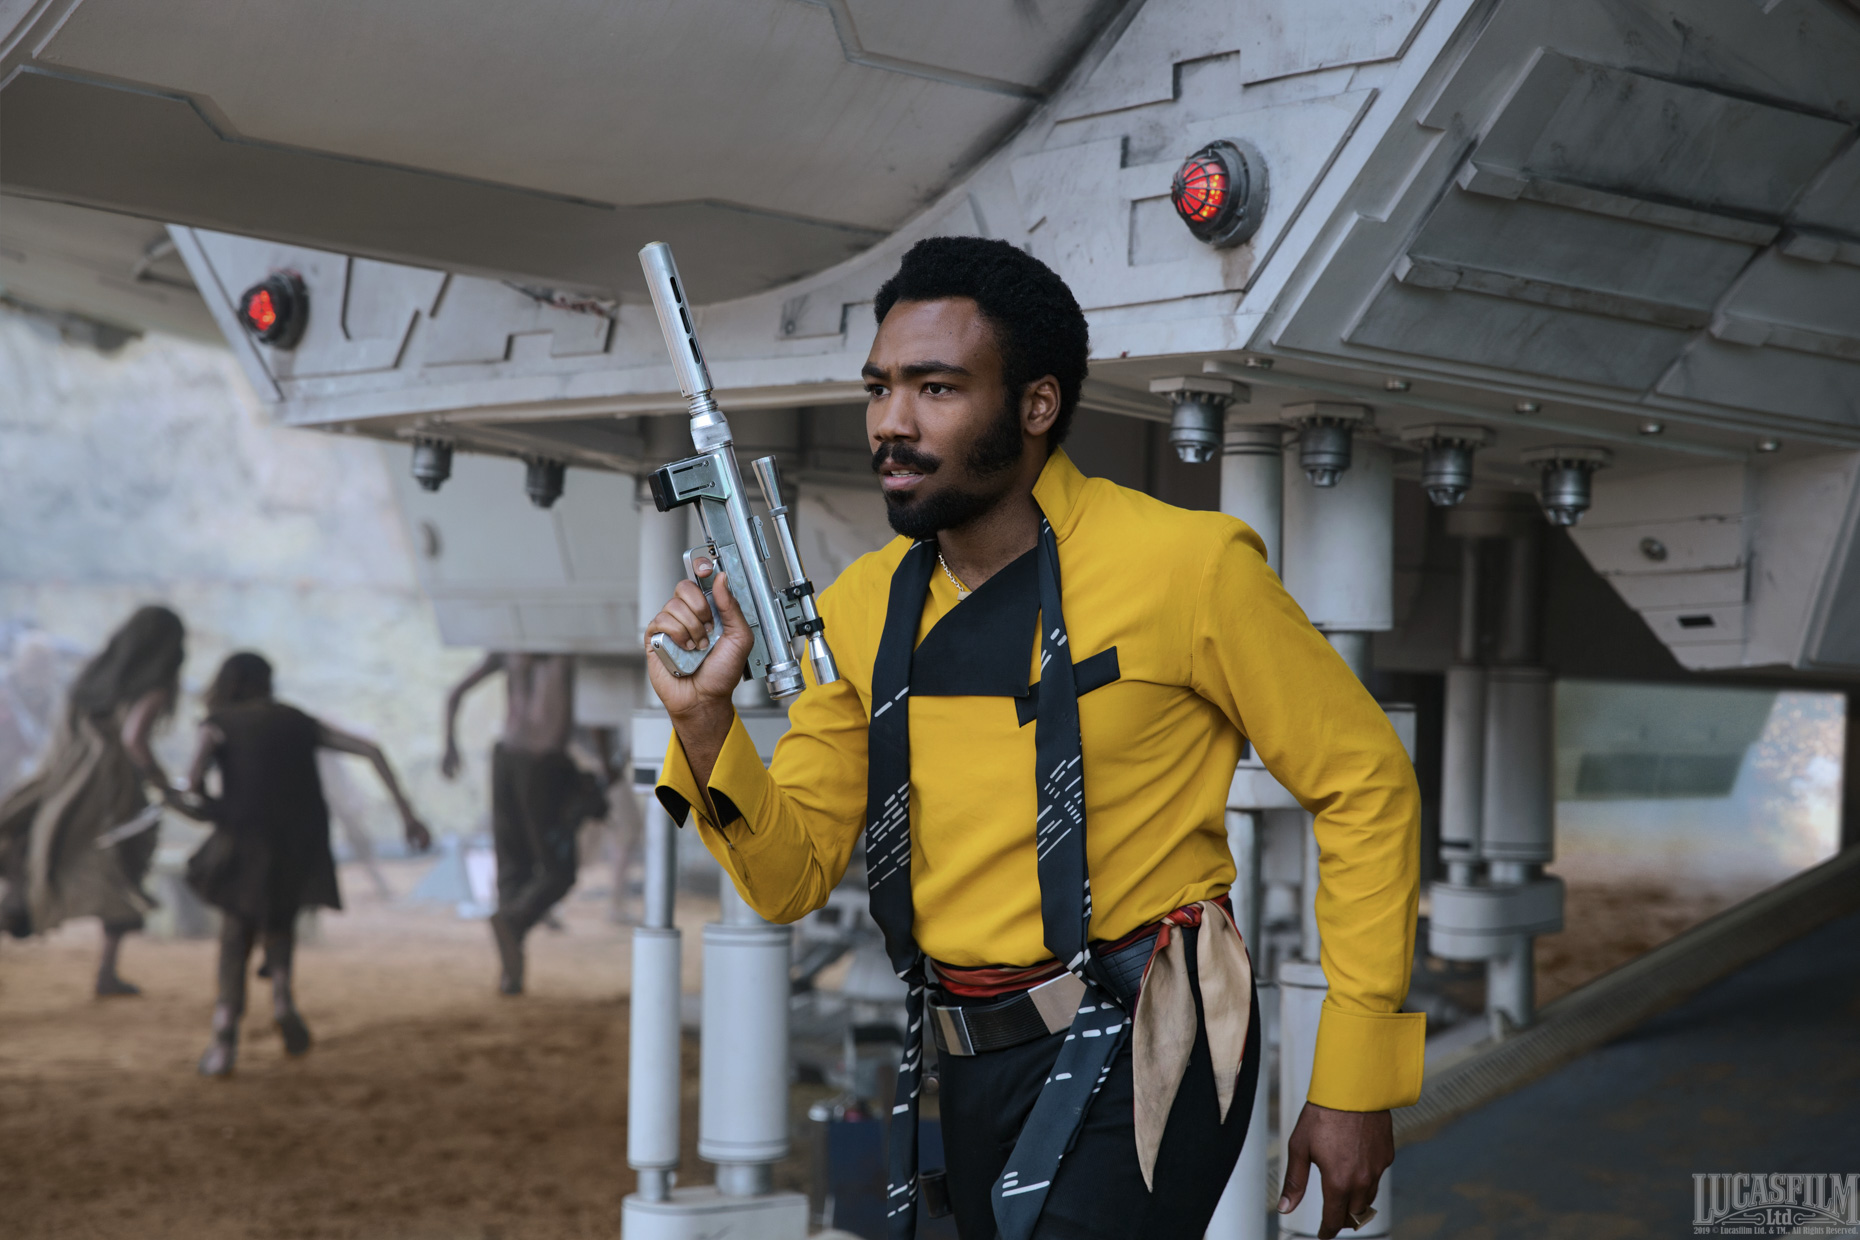 Solo, Star Wars, Lando Calrissian, Donald Glover, Blaster, John Wilson, Stills, Still, Unit, Photographer